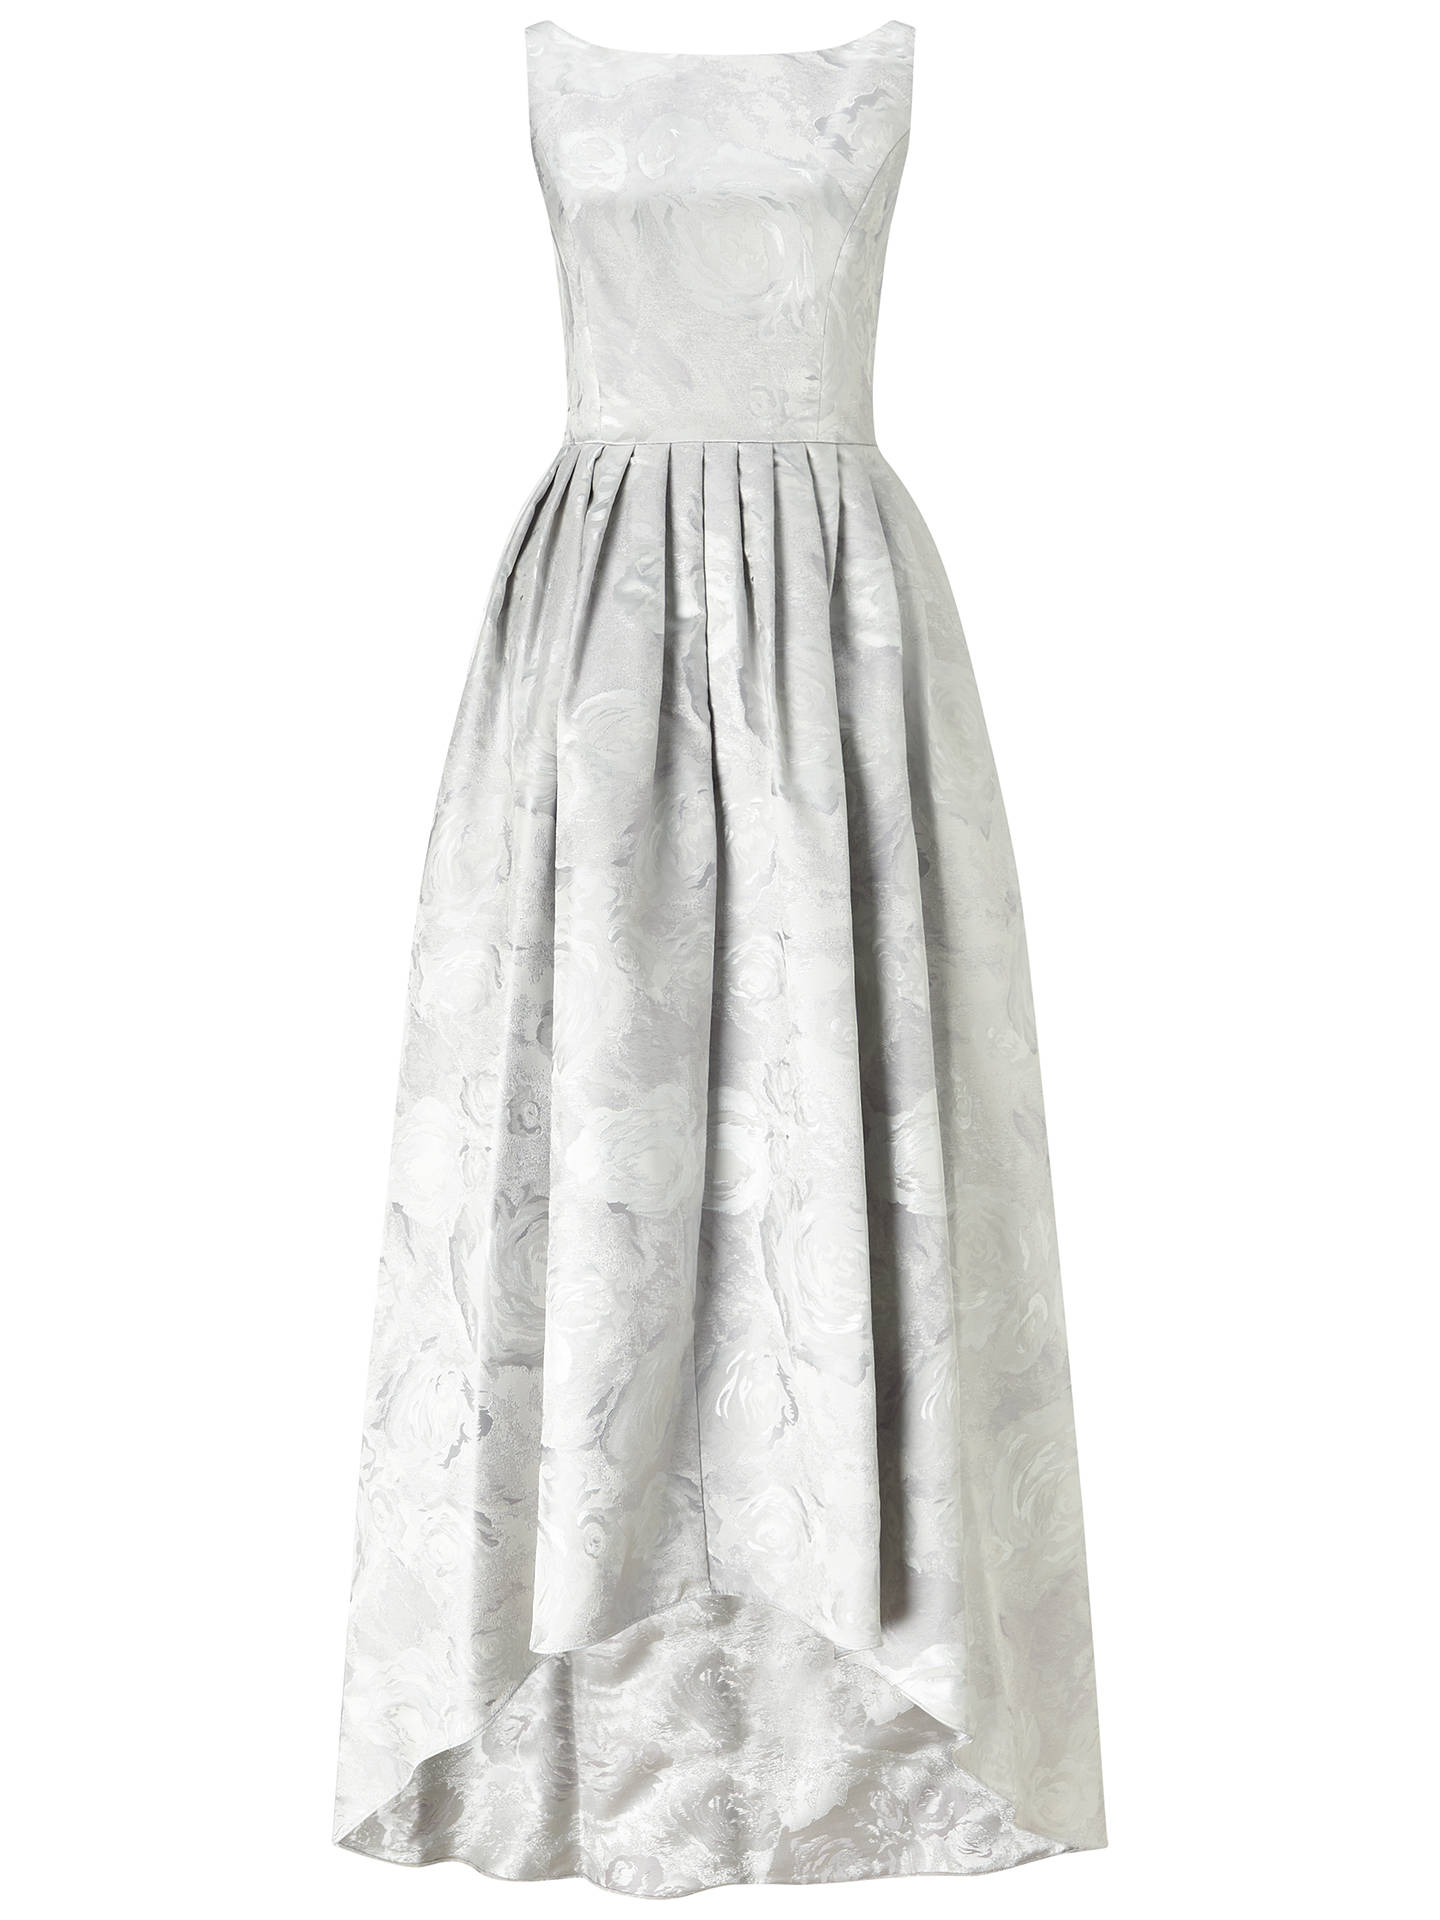 Adrianna Papell Sleeveless Jacquard High Low Ballgown Silver At John Lewis Partners